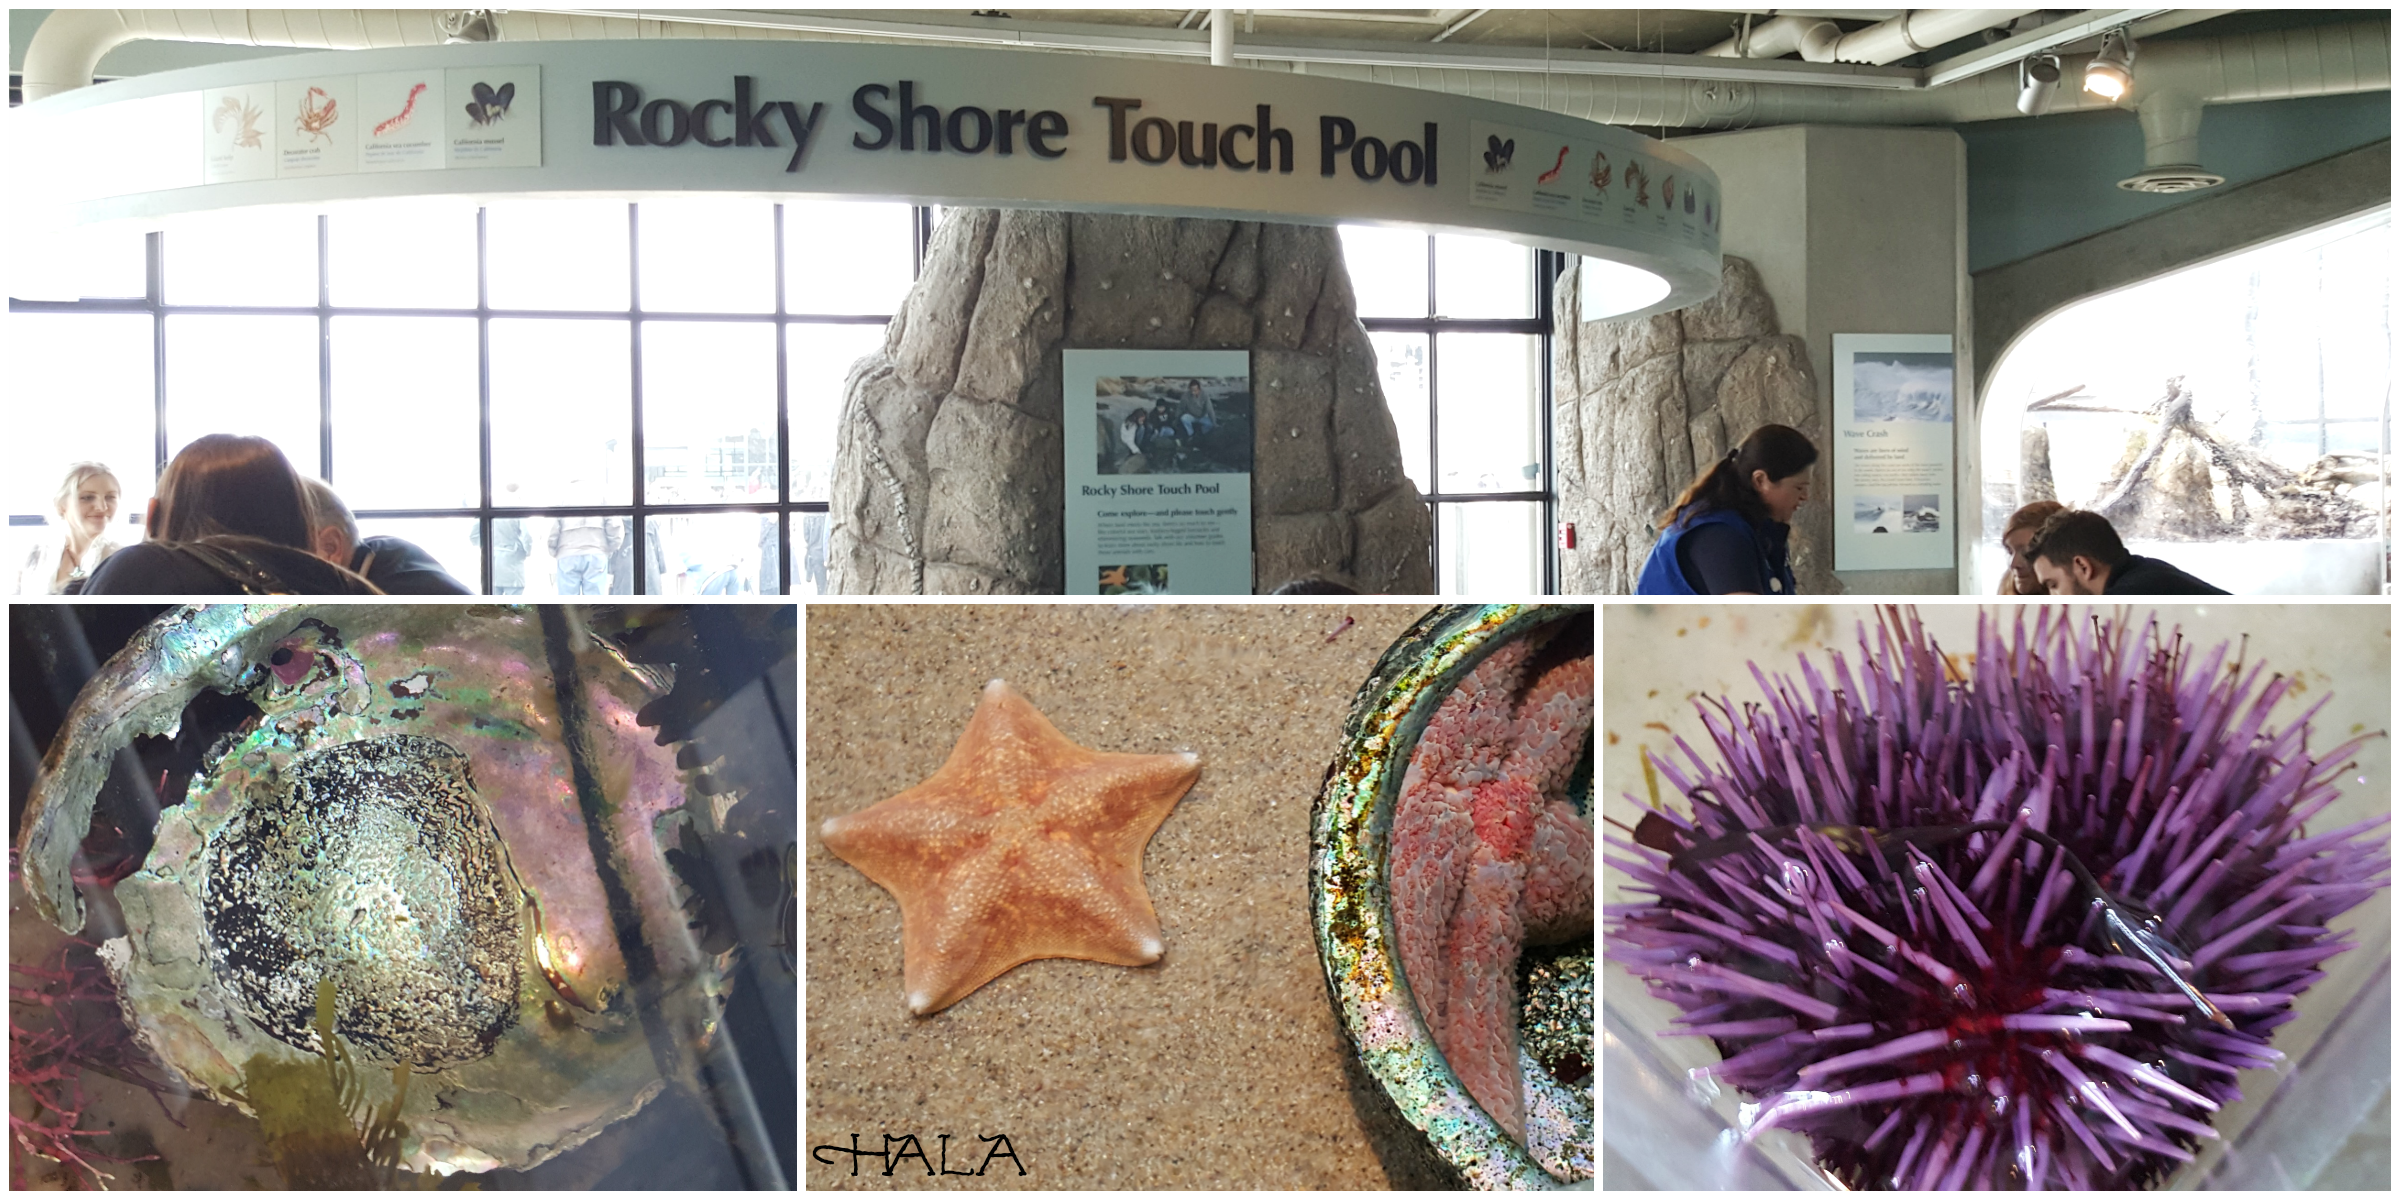 Rocky Shore Touch Pool